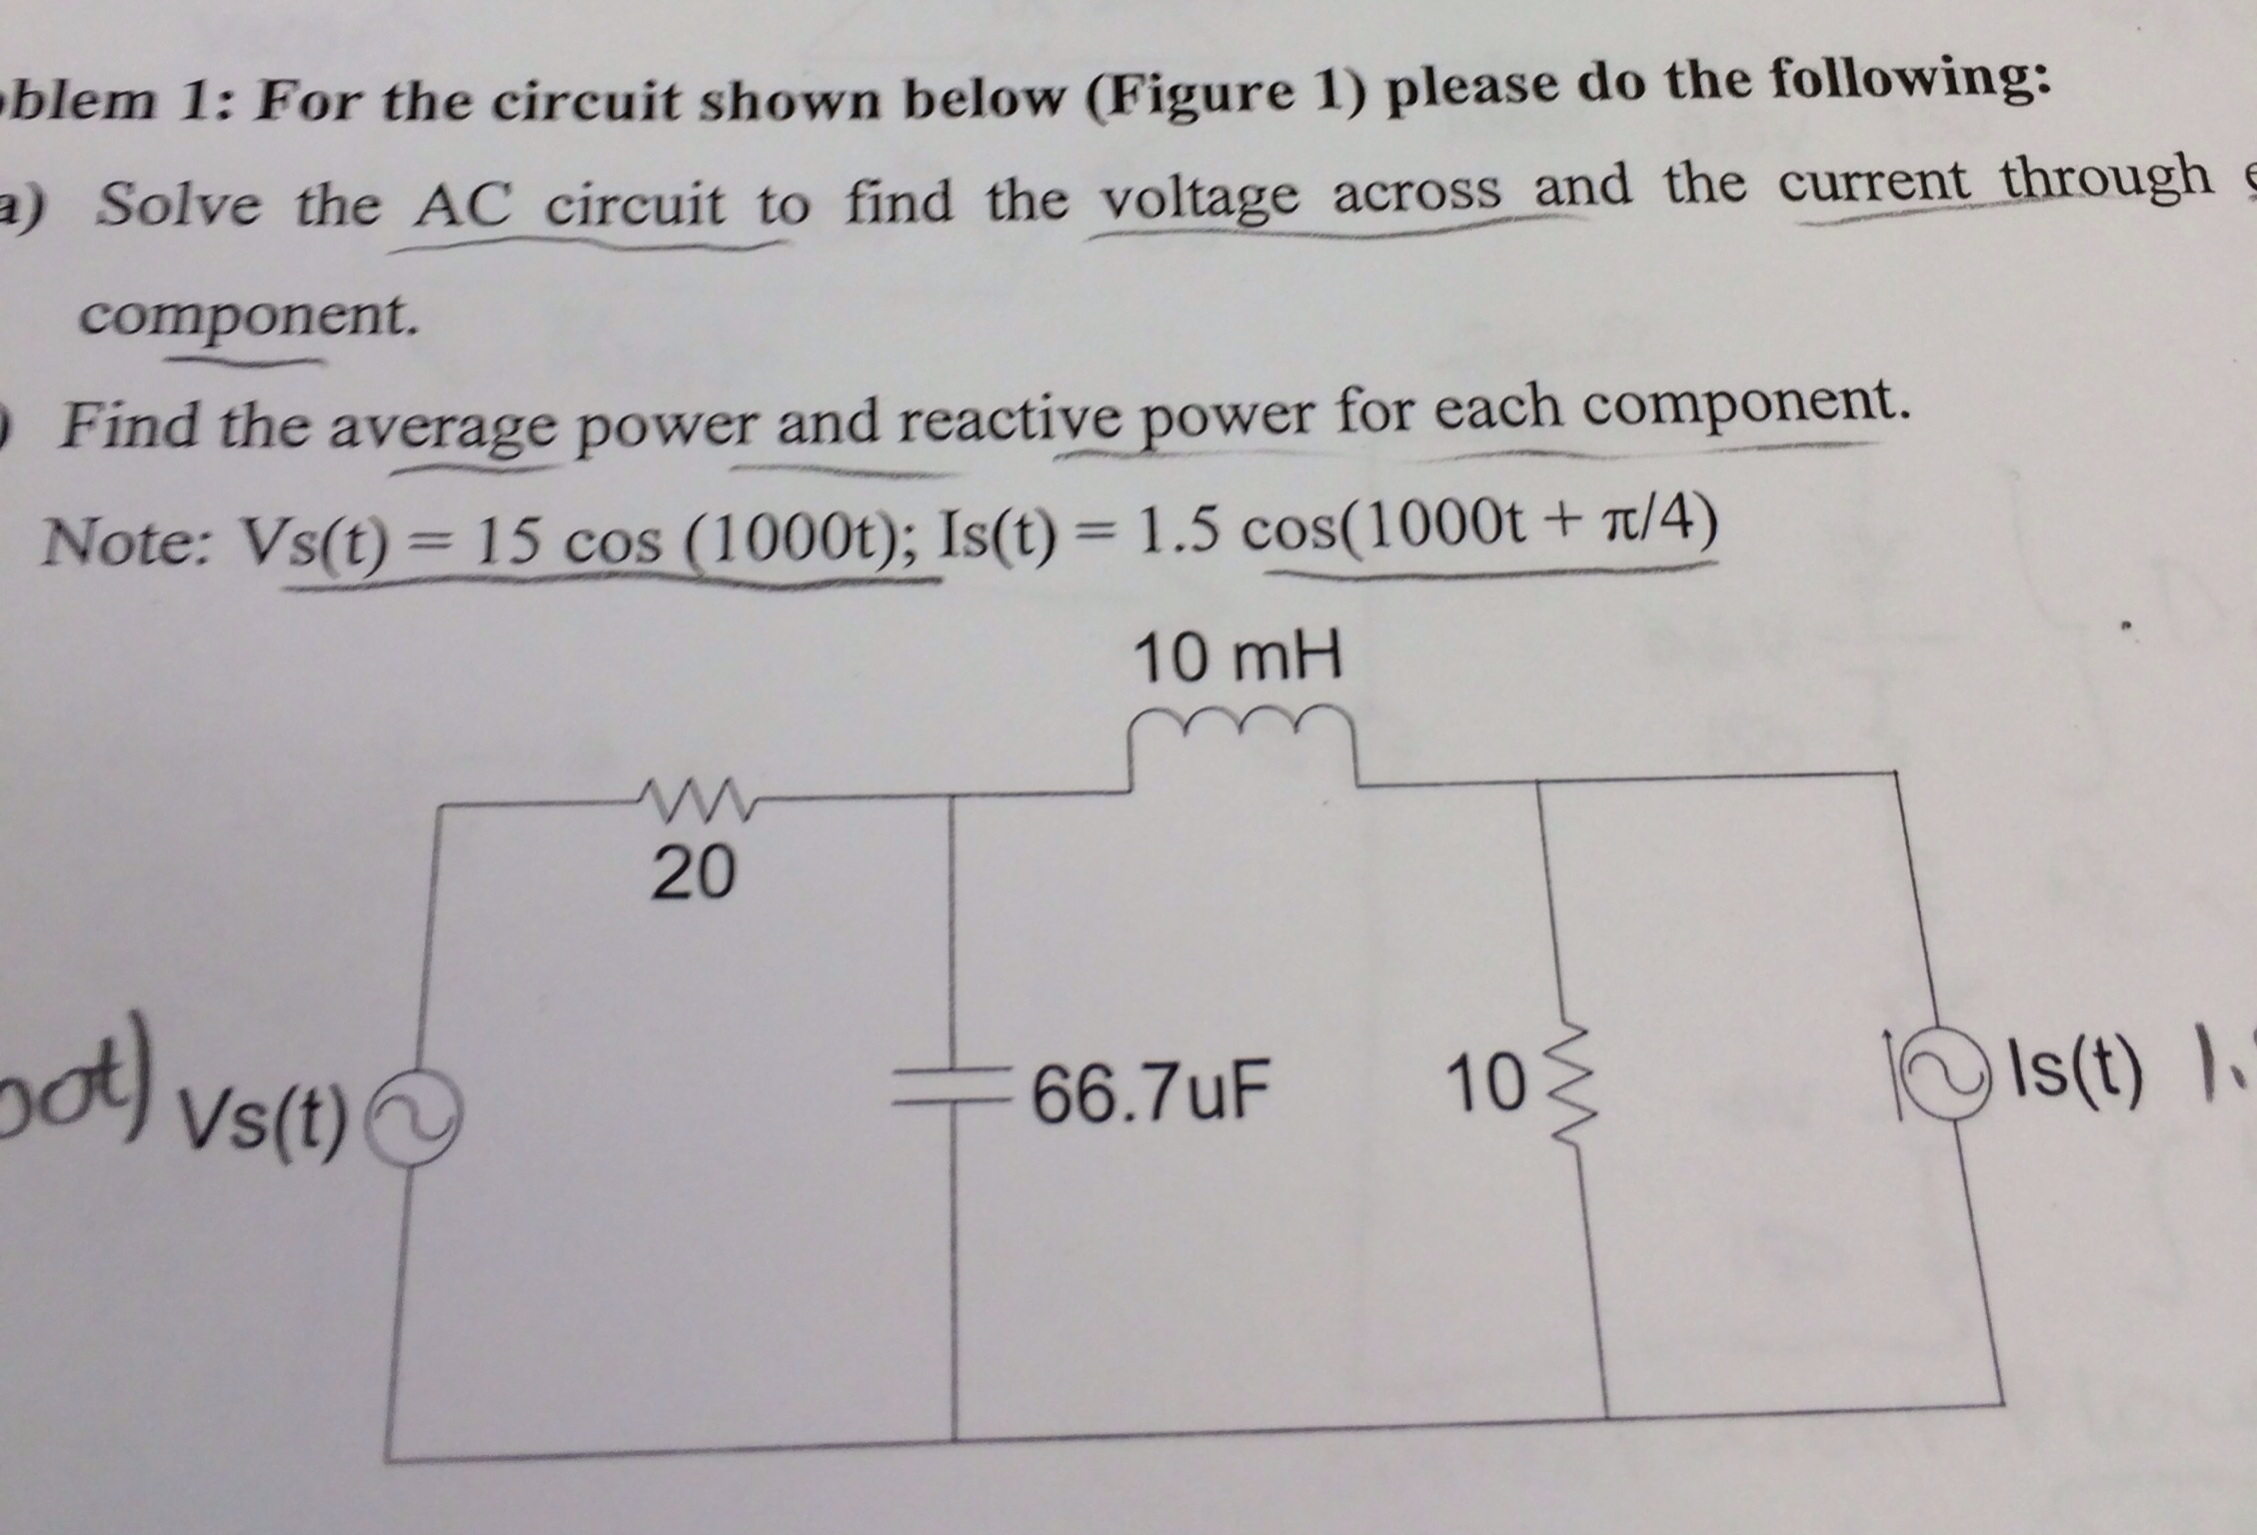 For the circuit shown below (Figure 1) please do t